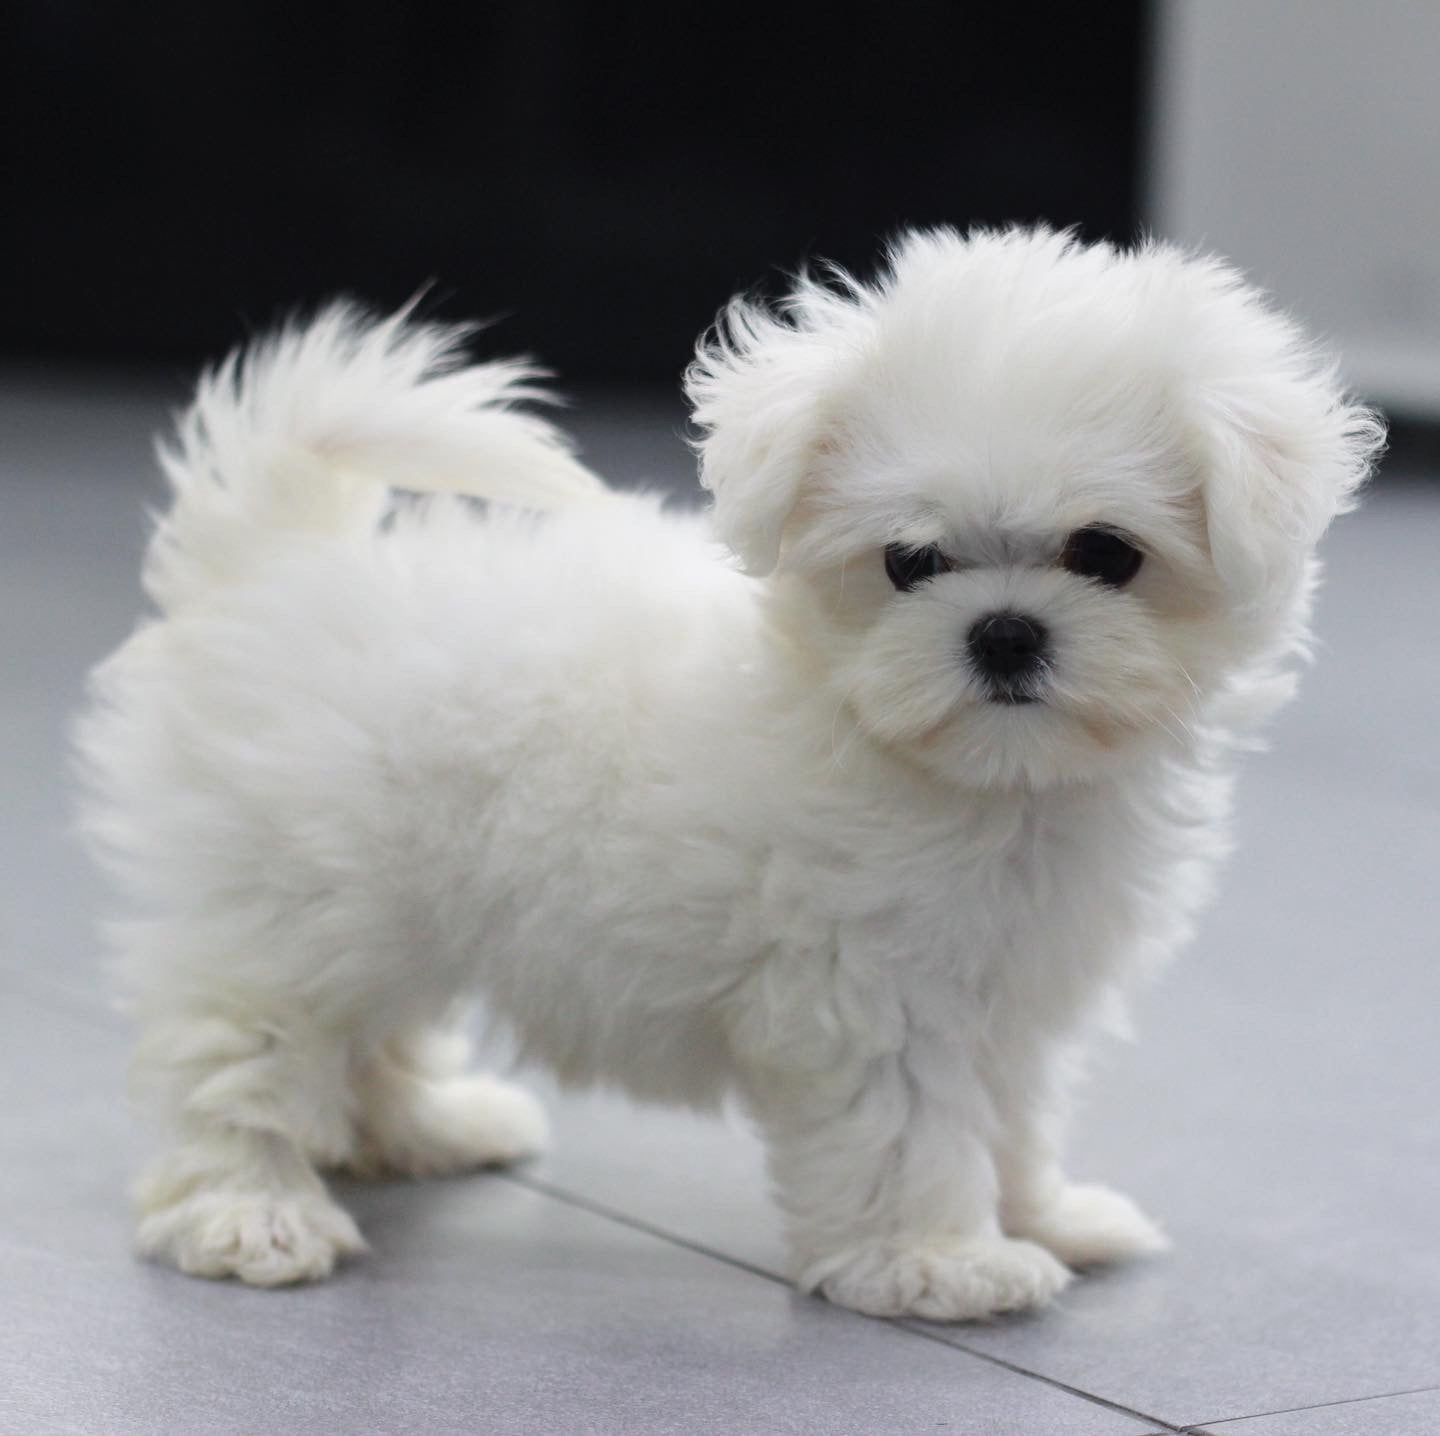 Teacup maltese Female [Mia]